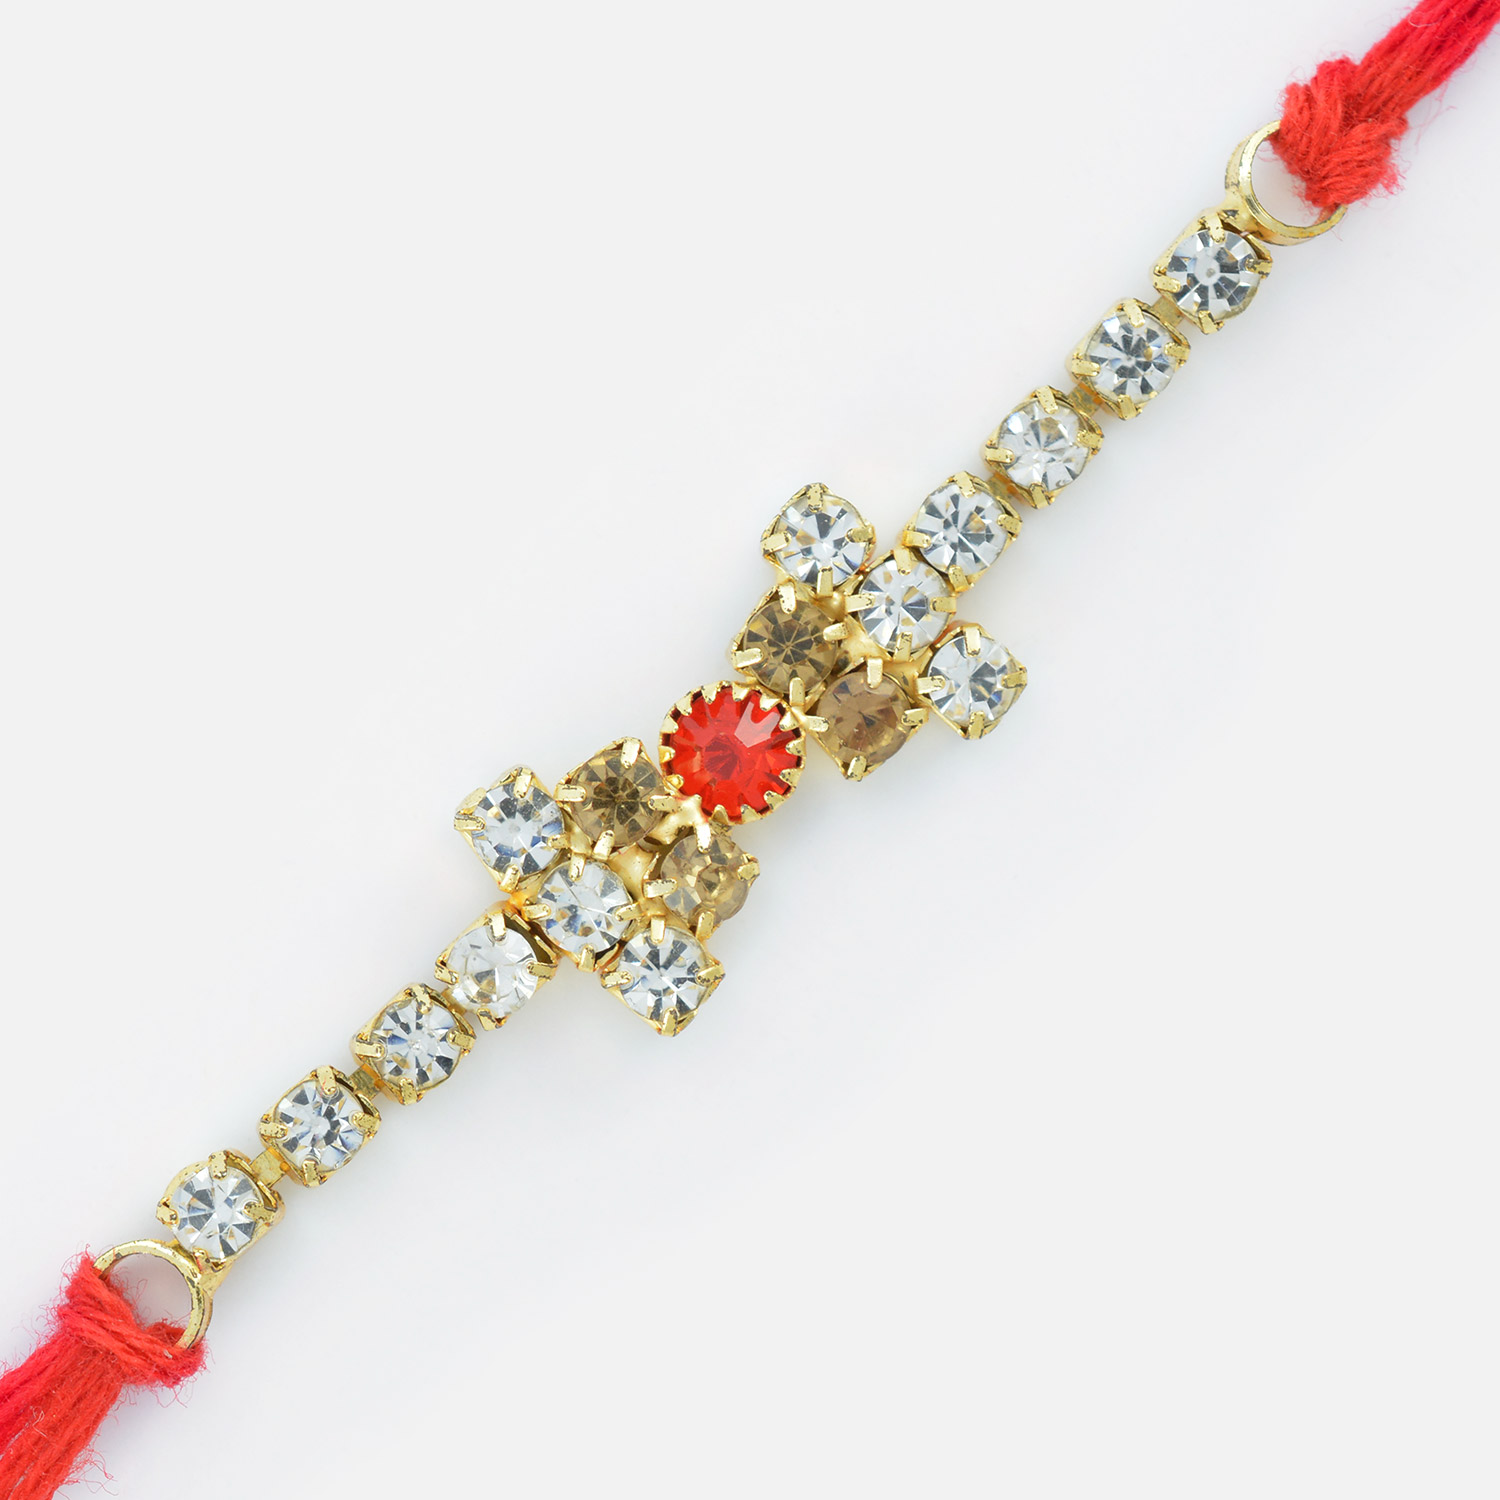 Sightly Different Central Red Dimaond Rakhi for Brother